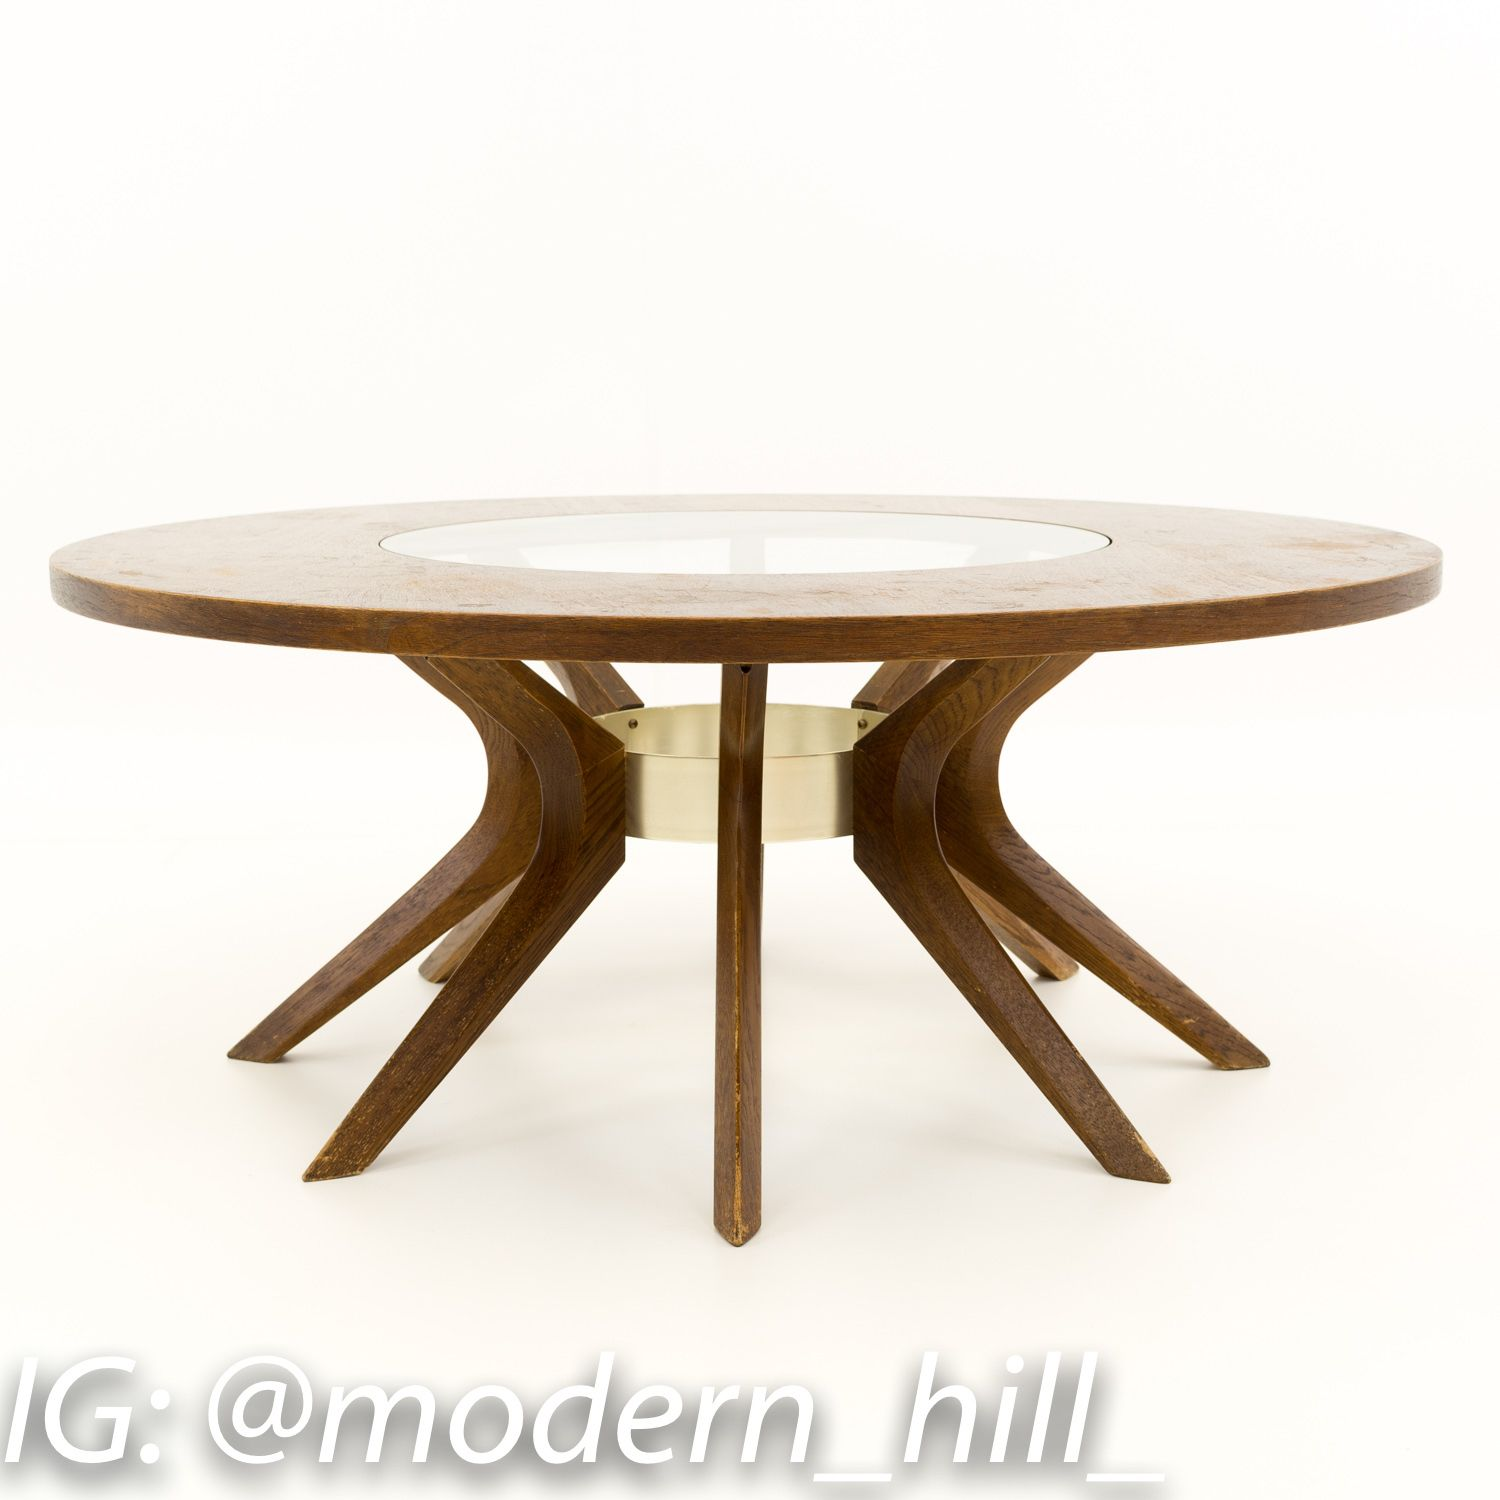 Broyhill Brasilia Cathedral Glass And Walnut Mid Century Round Coffee Table Round Mid Century Modern Coffee Table Mid Century Modern Coffee Table Coffee Table [ 1500 x 1500 Pixel ]